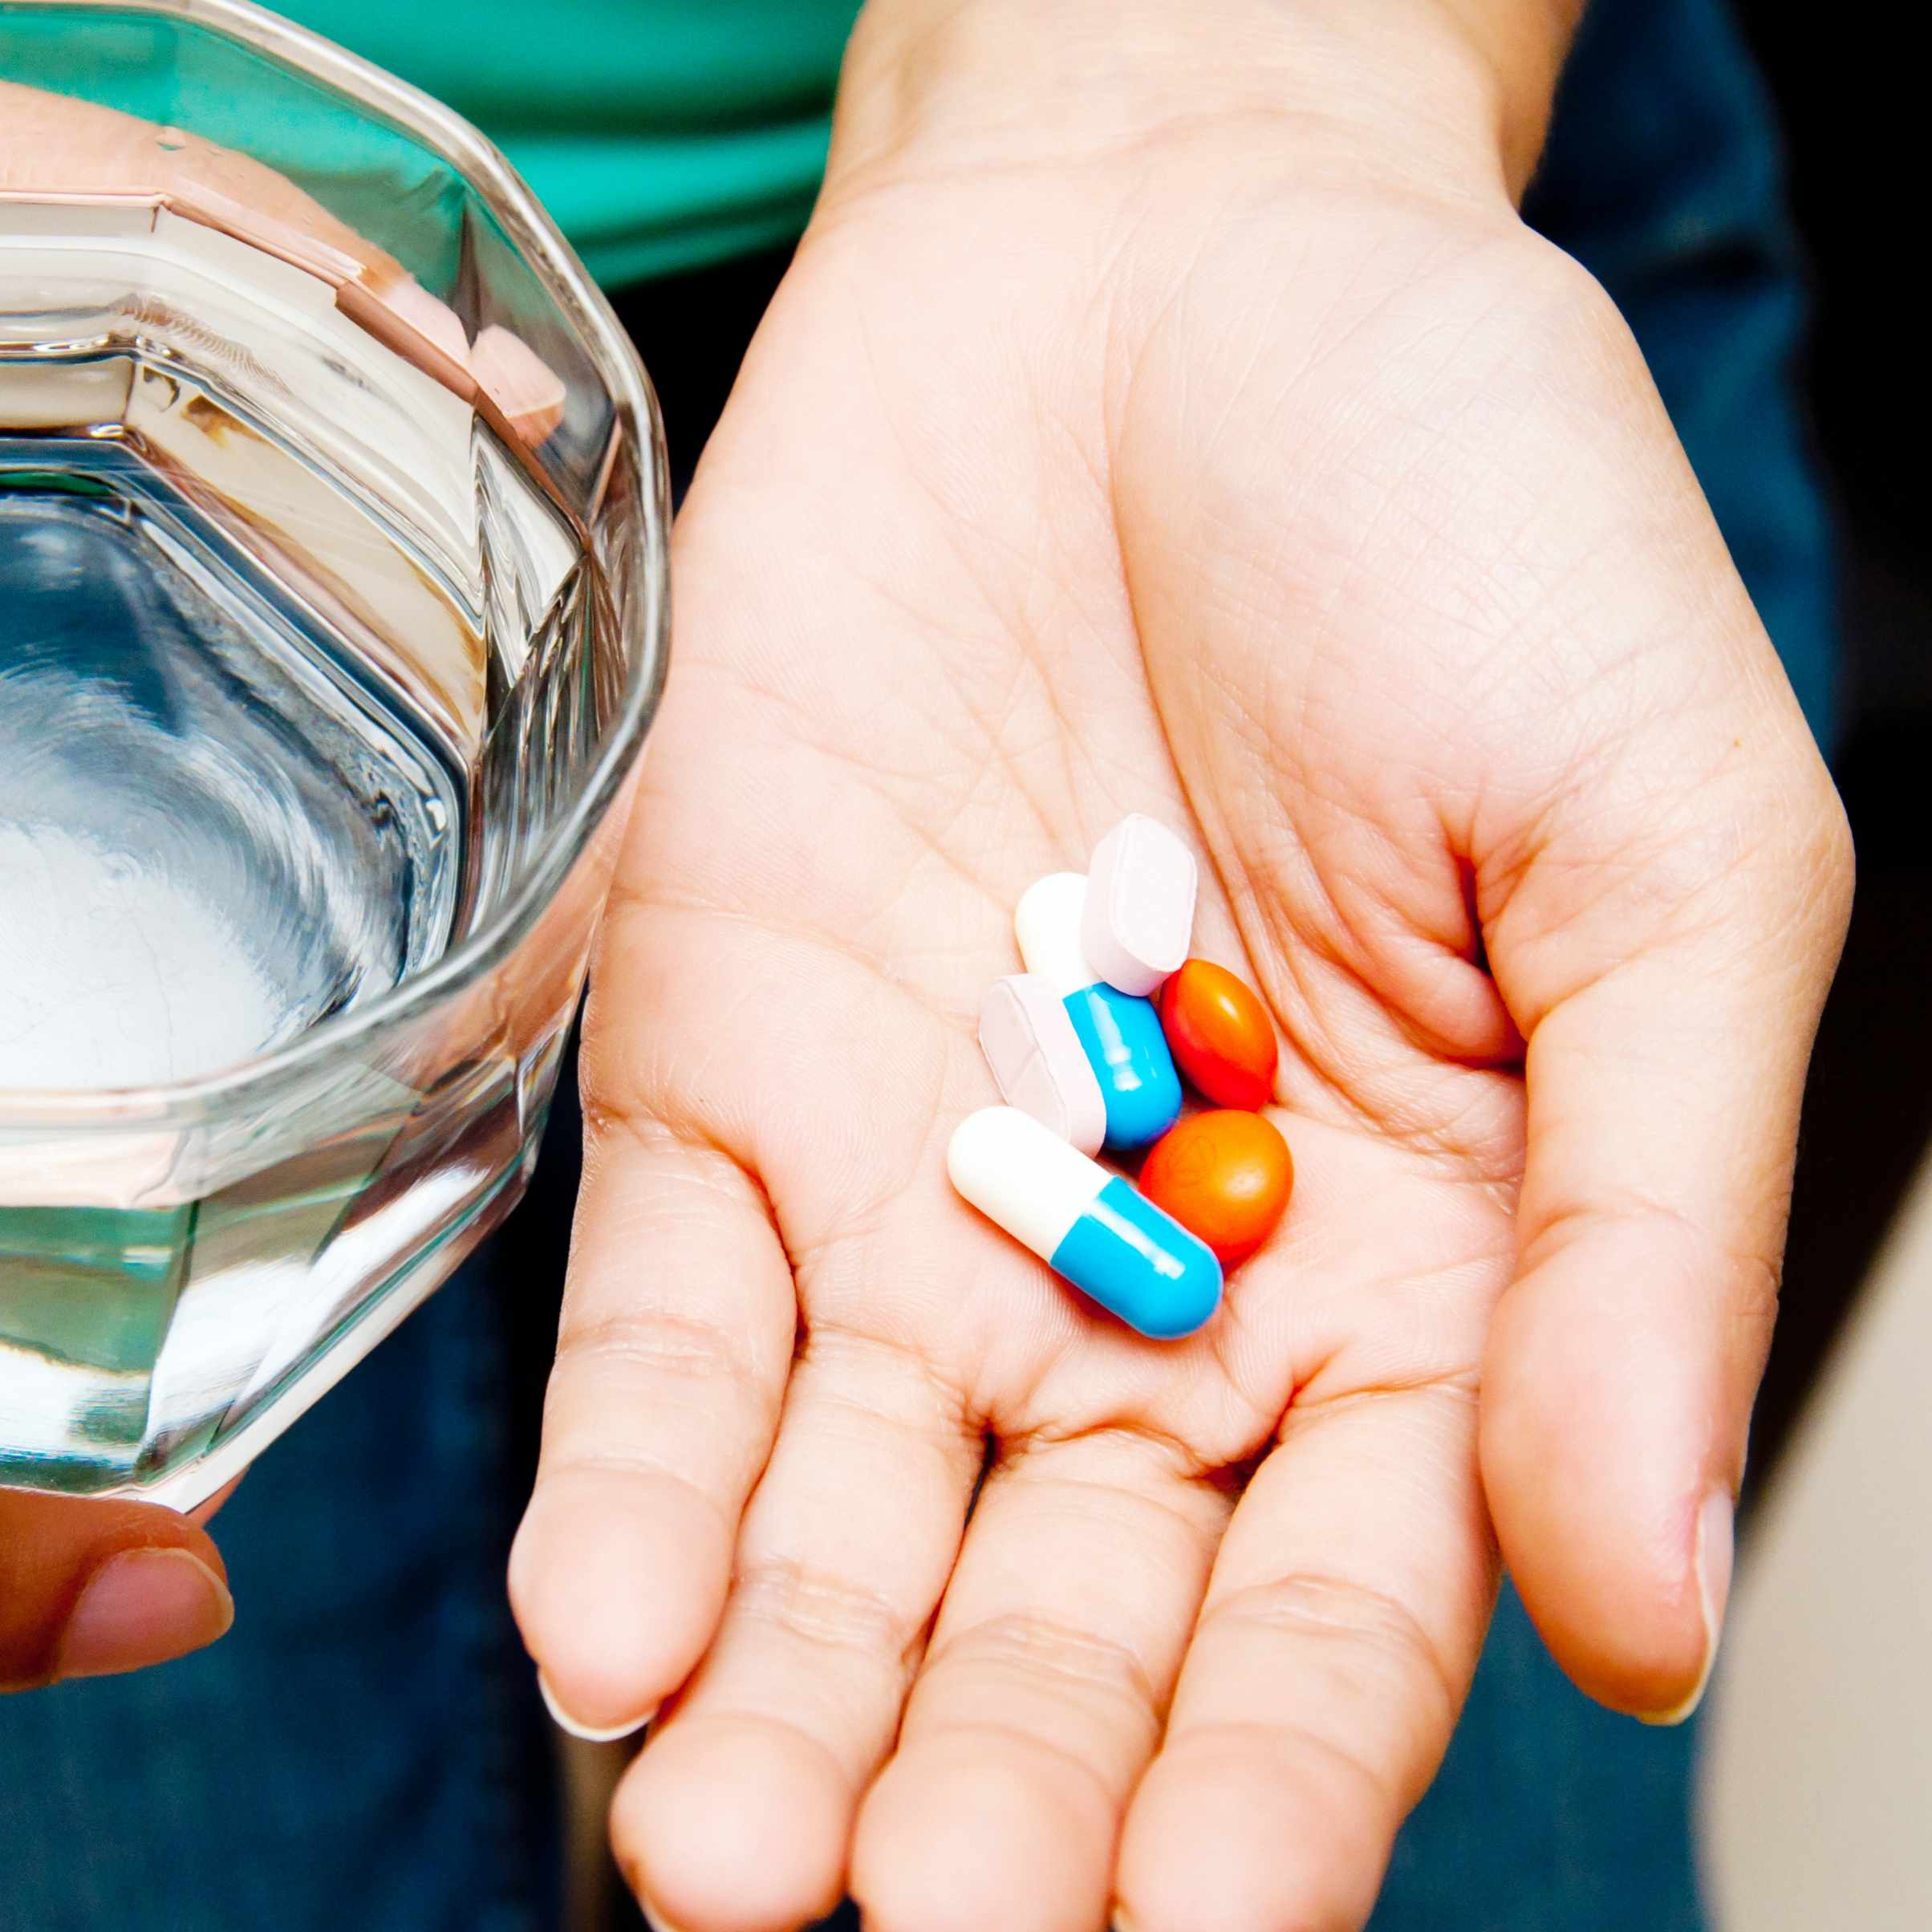 a person holding a glass of water and a handful of medication pills